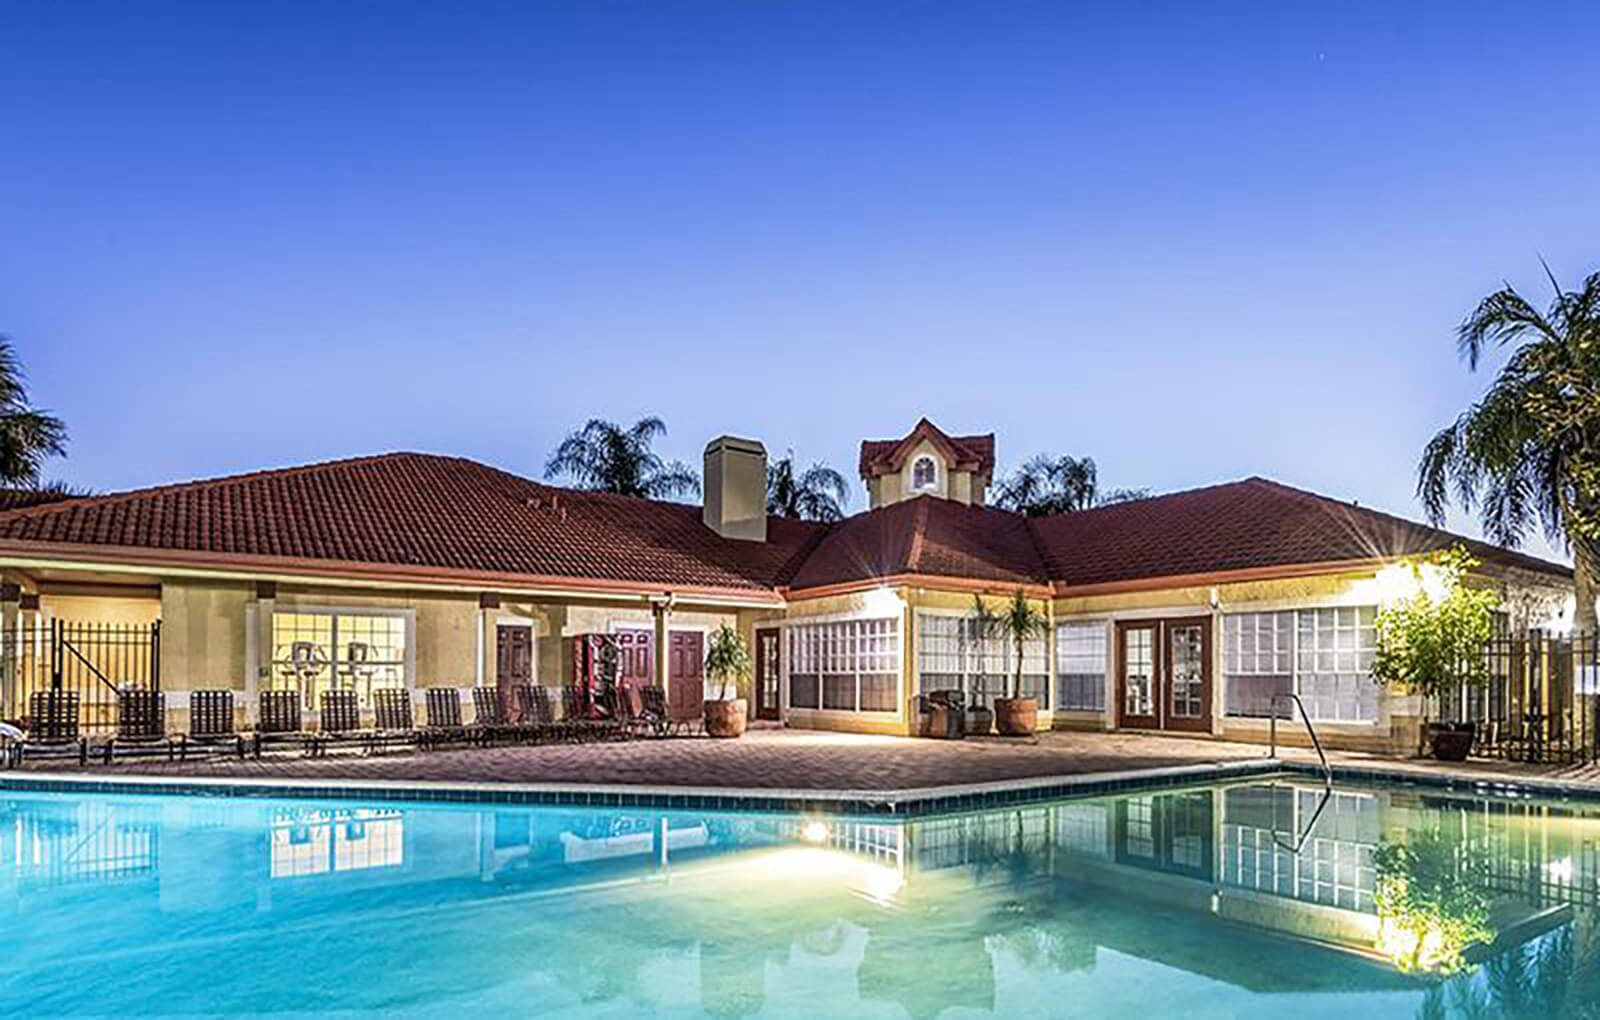 Resort style pool and clubhouse exterior